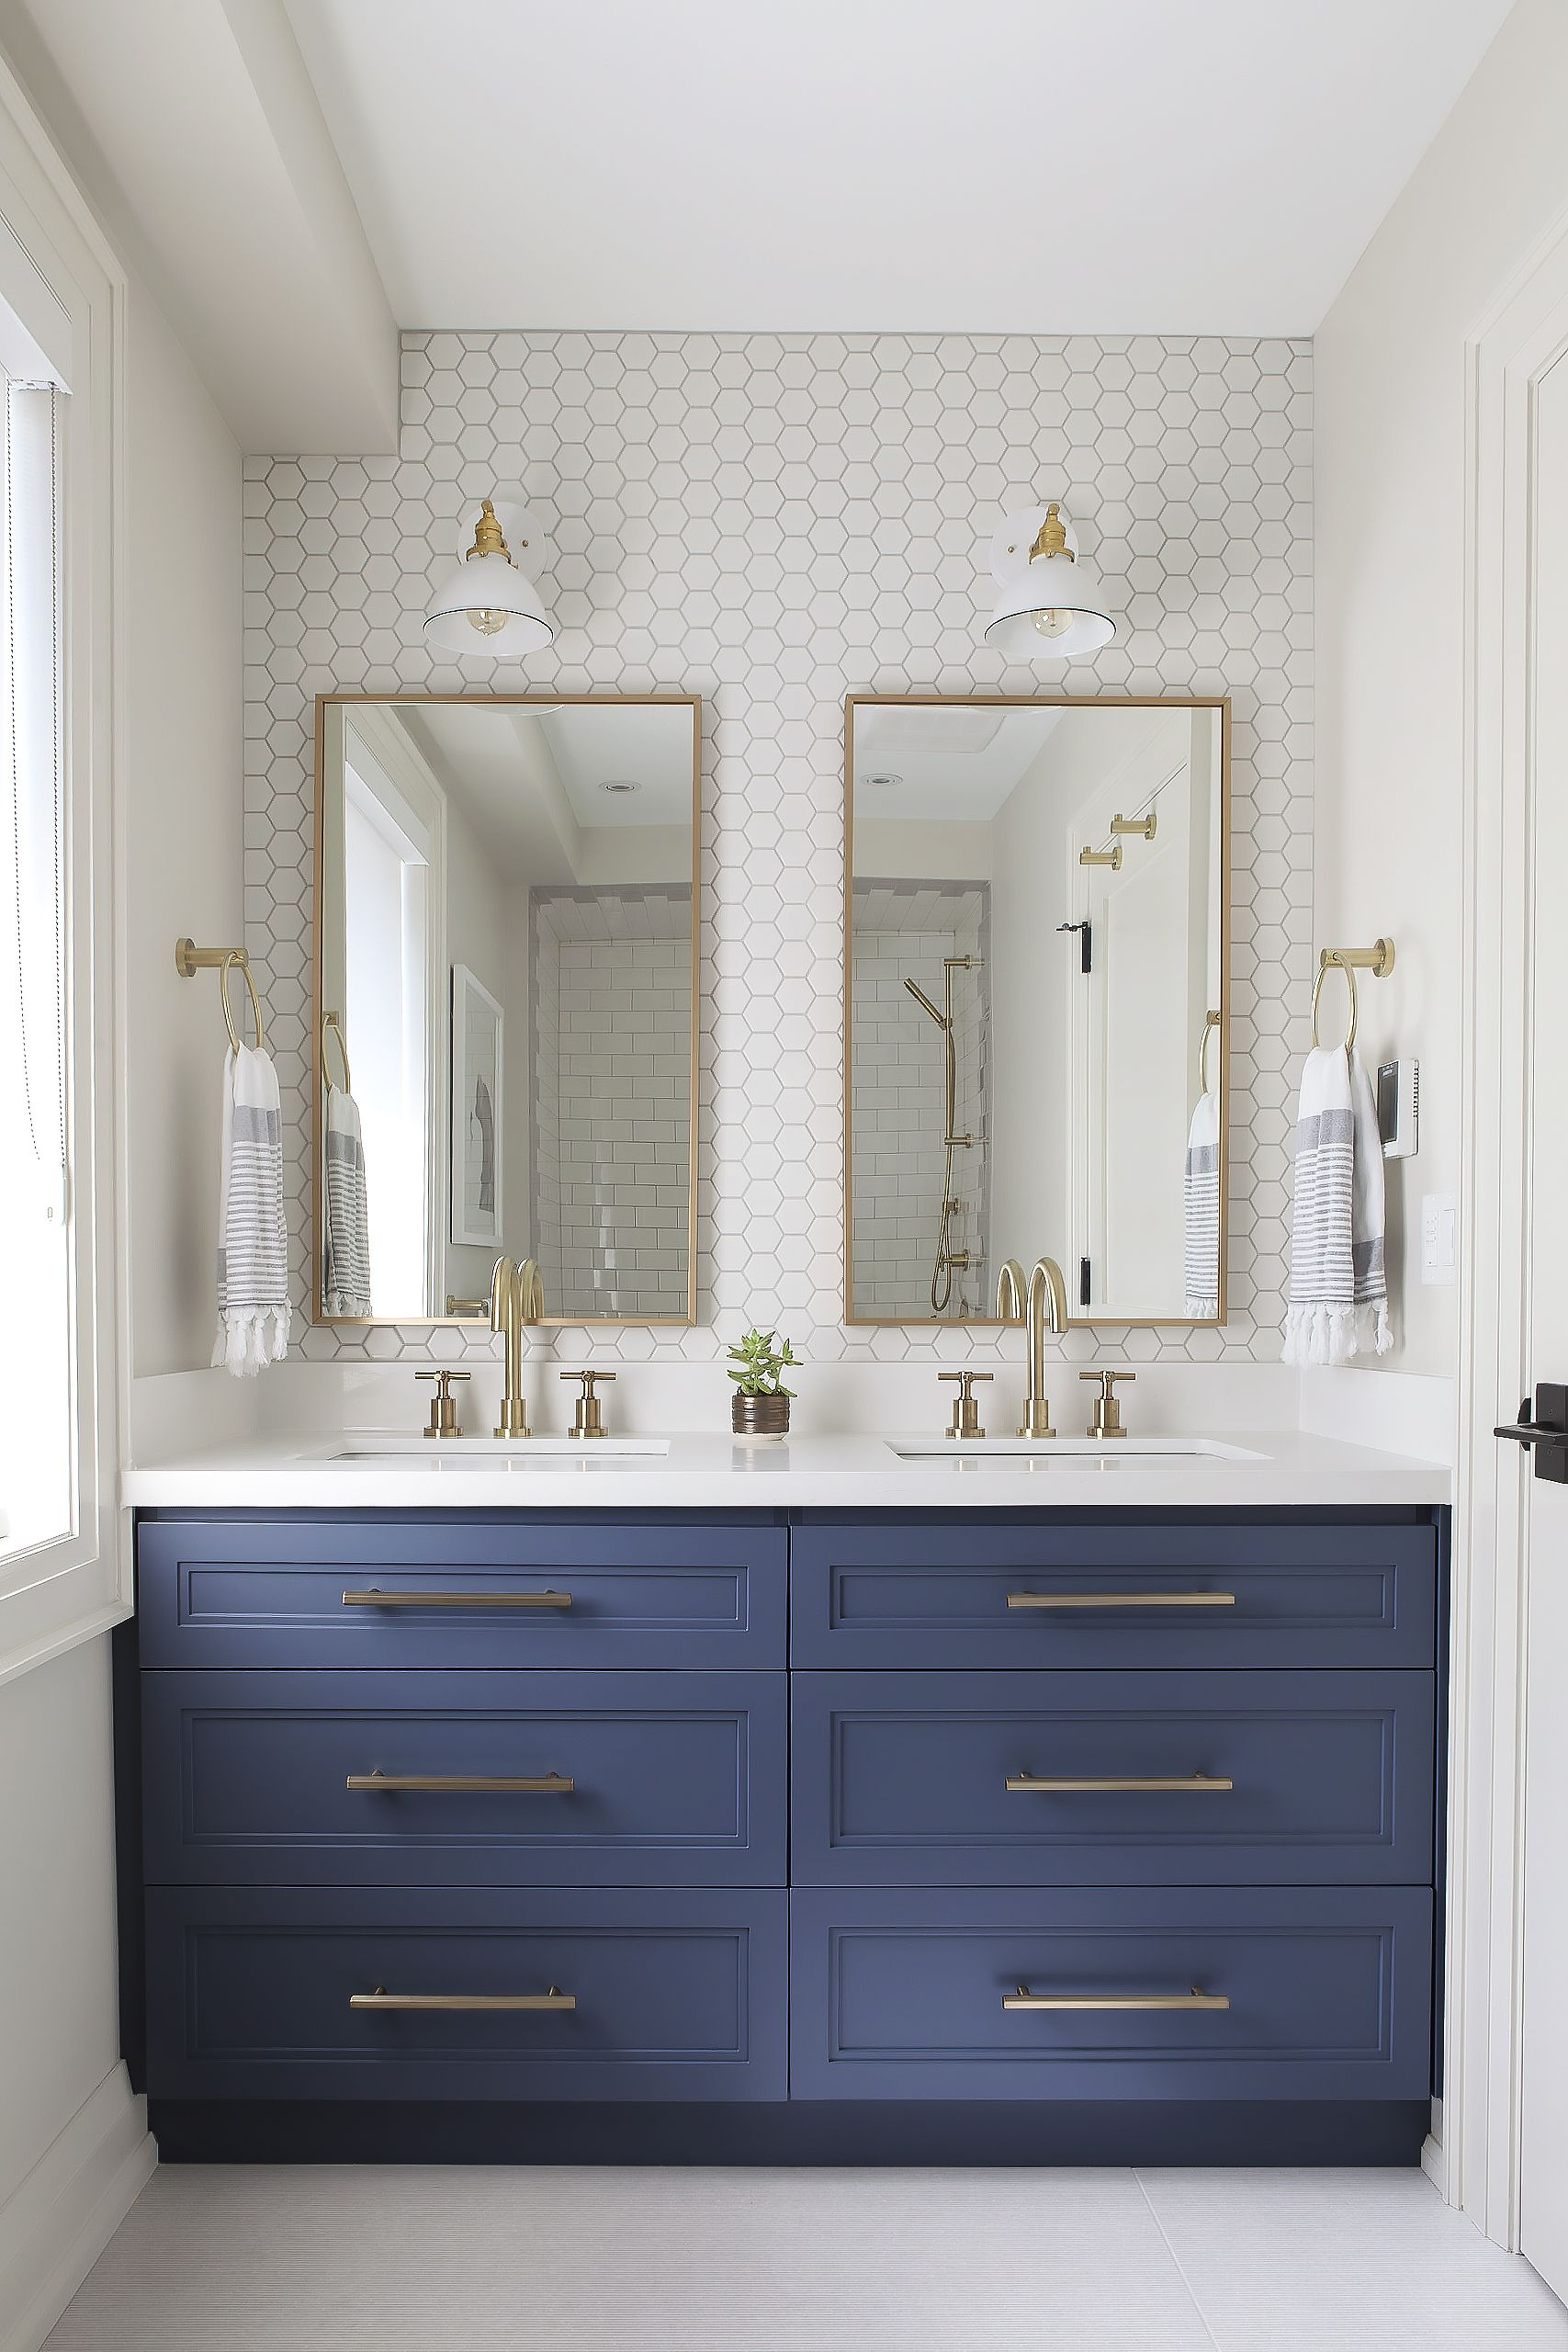 Deep Blue Painted Cabinets In An Otherwise All White Bathroom I Also Love The Hexigon Tile Wall An Bathroom Interior Modern Bathroom Bathroom Interior Design